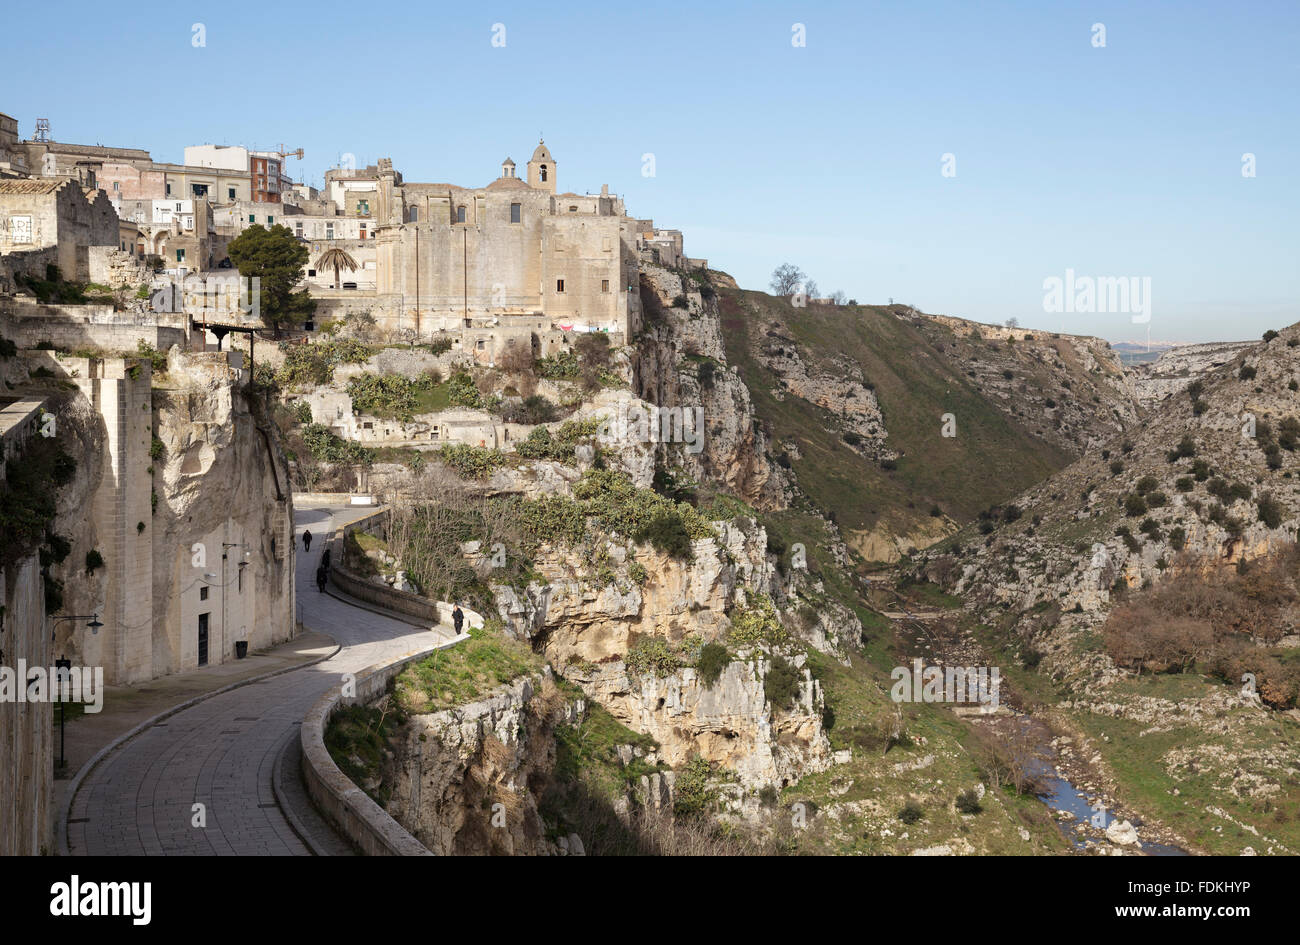 torrente-gravina-with-town-along-via-madonna-delle-virtu-with-convent-FDKHYP.jpg